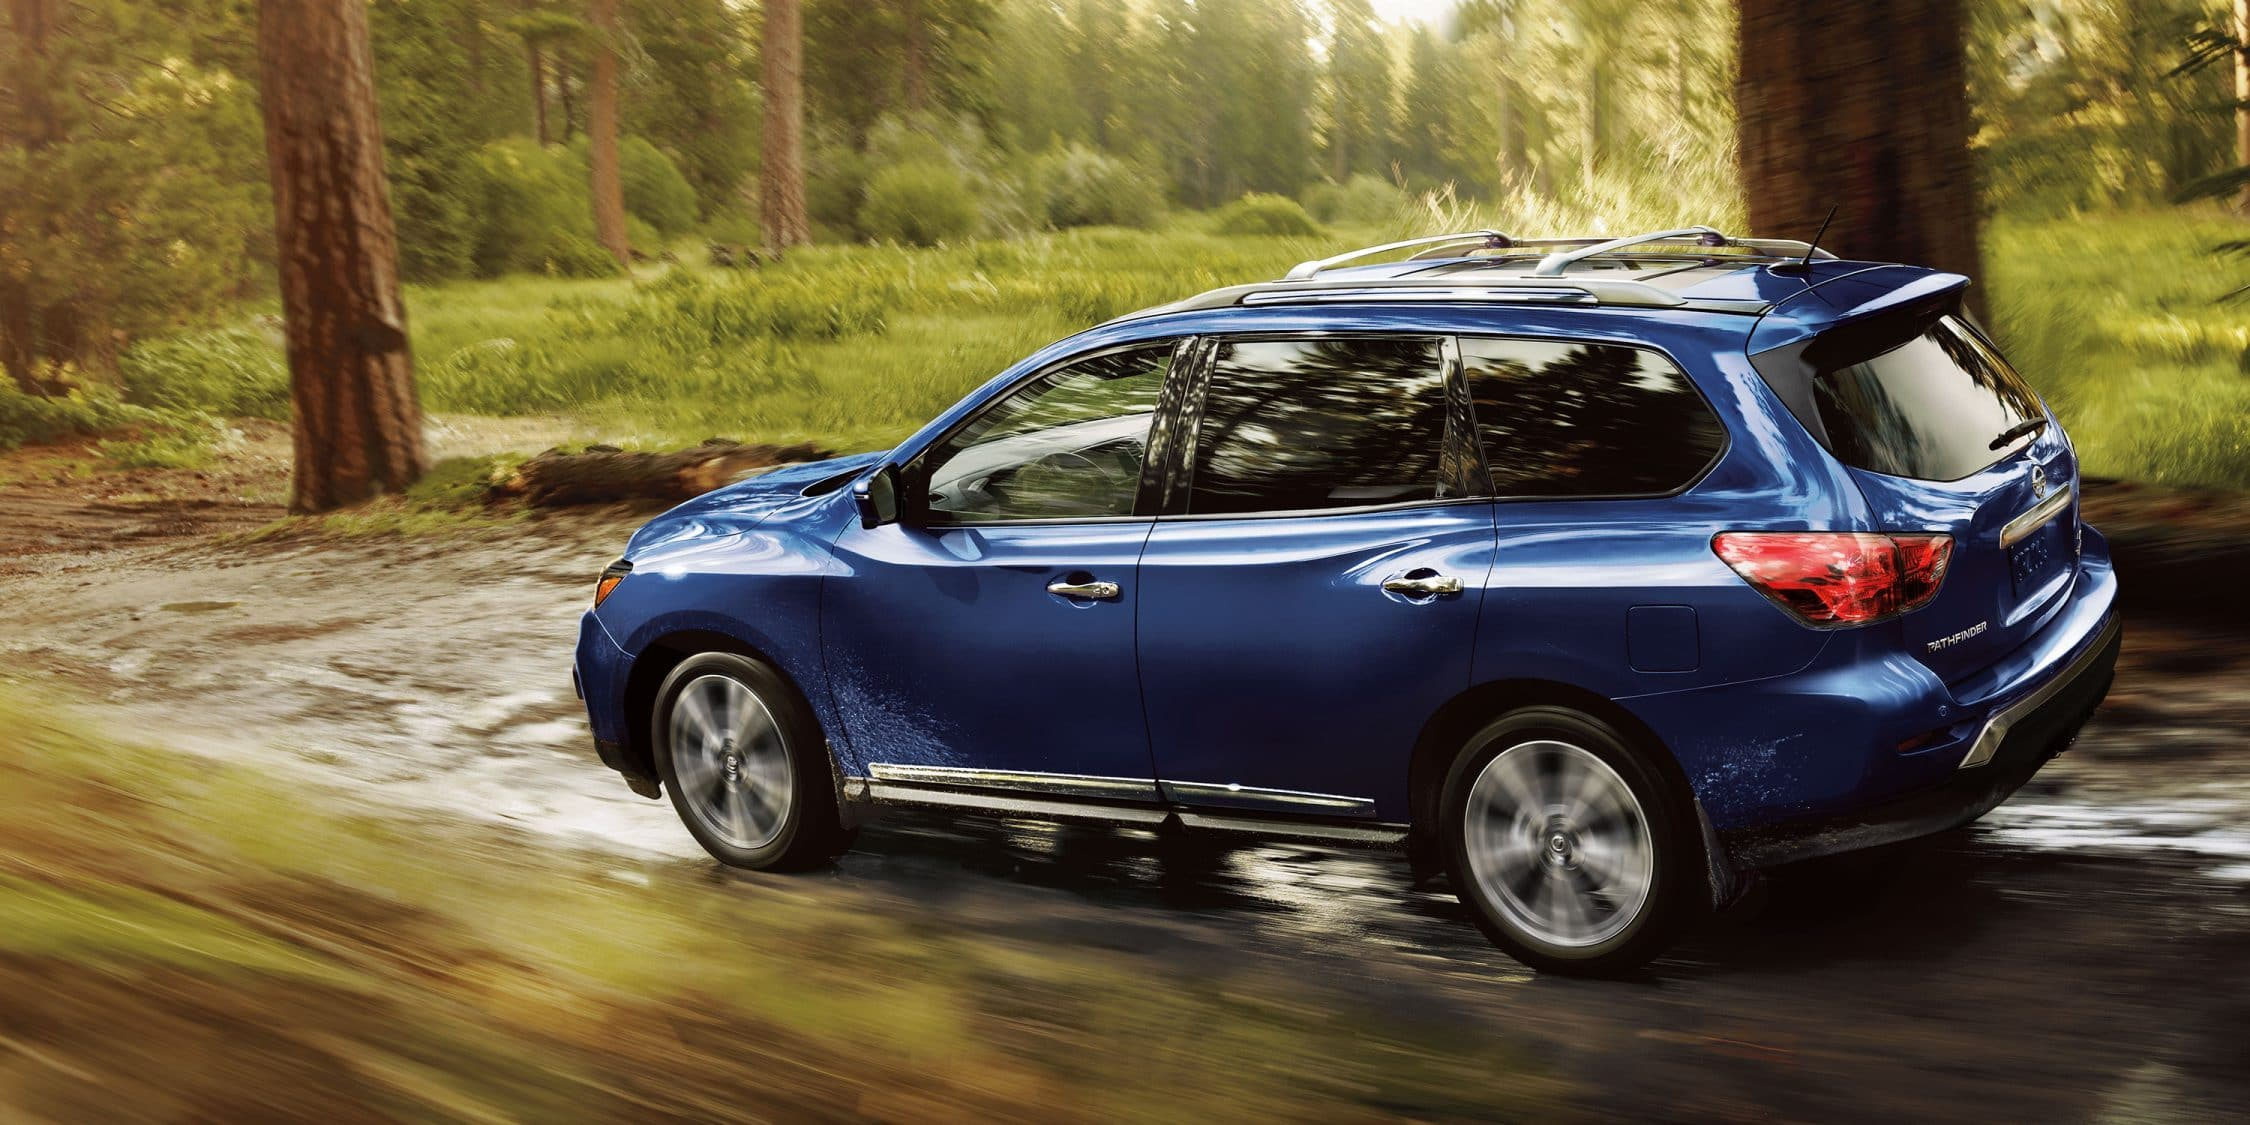 nd nissan auto suv new inc of canpak sale bismarck pathfinder awesome le sl brochure for pdf